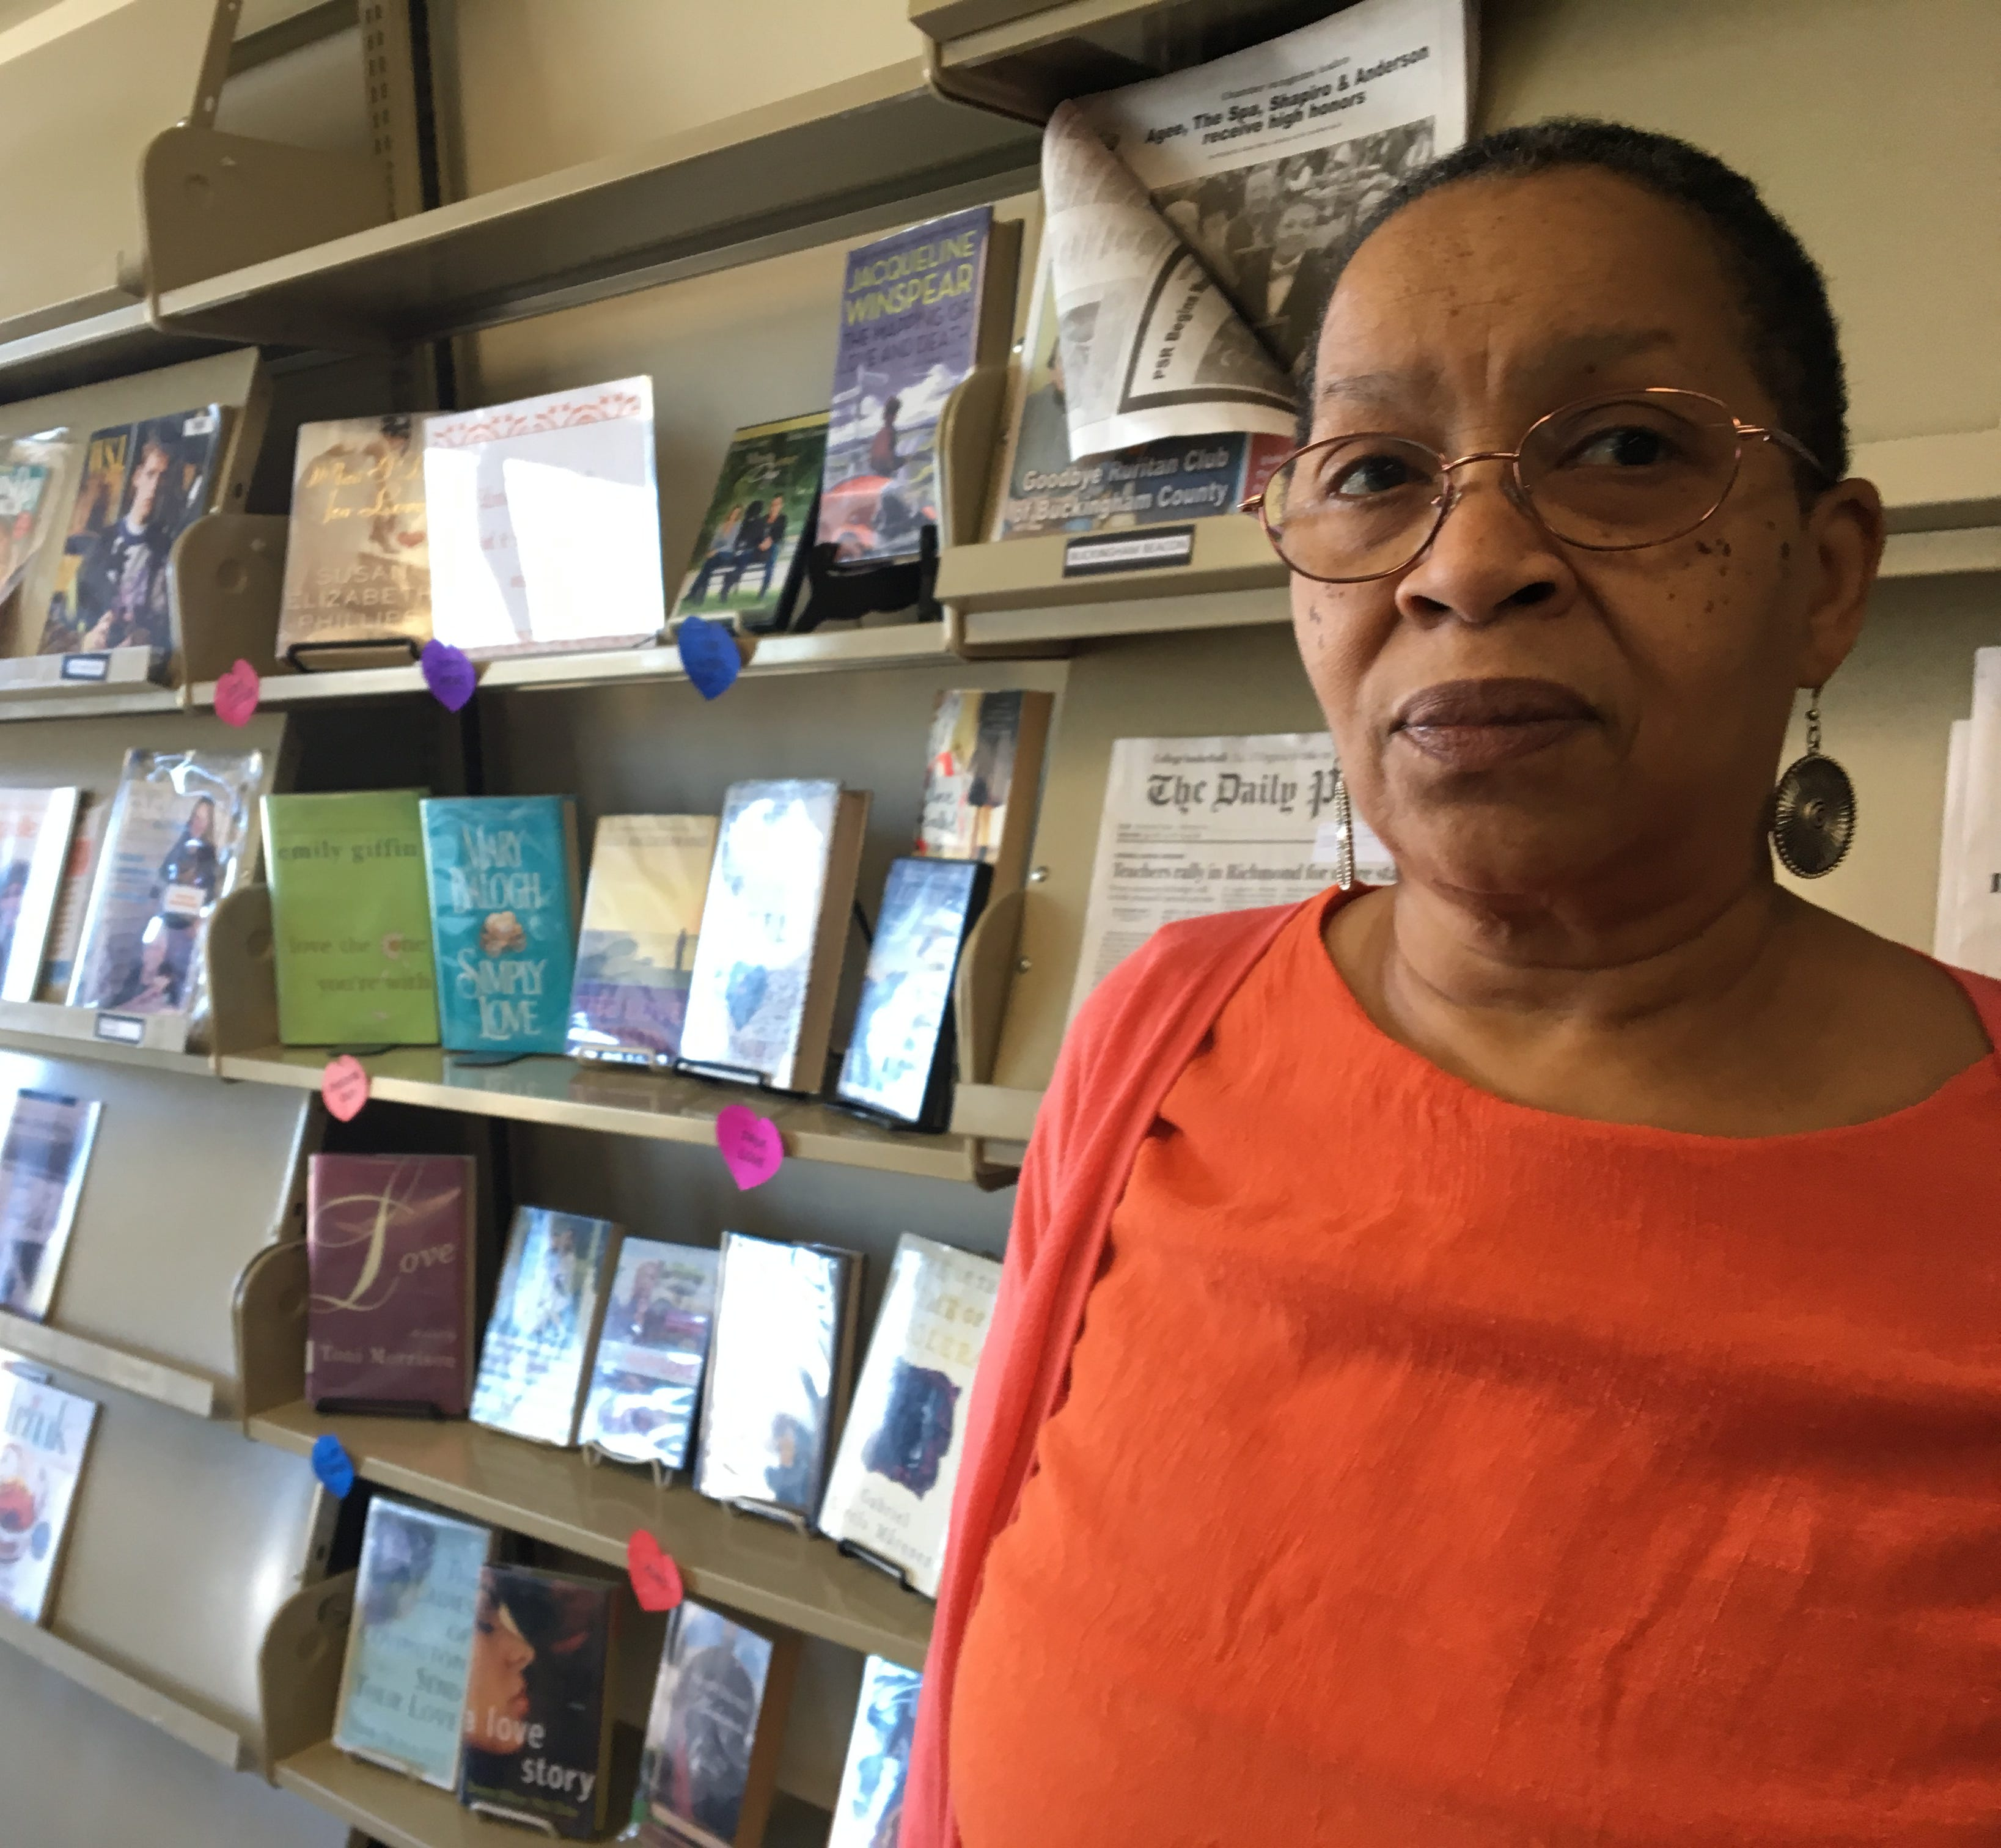 Anne Echols, 62, hears from concerned Buckingham County residents daily at the county library. They fear the compressor station will hurt a historically black community.